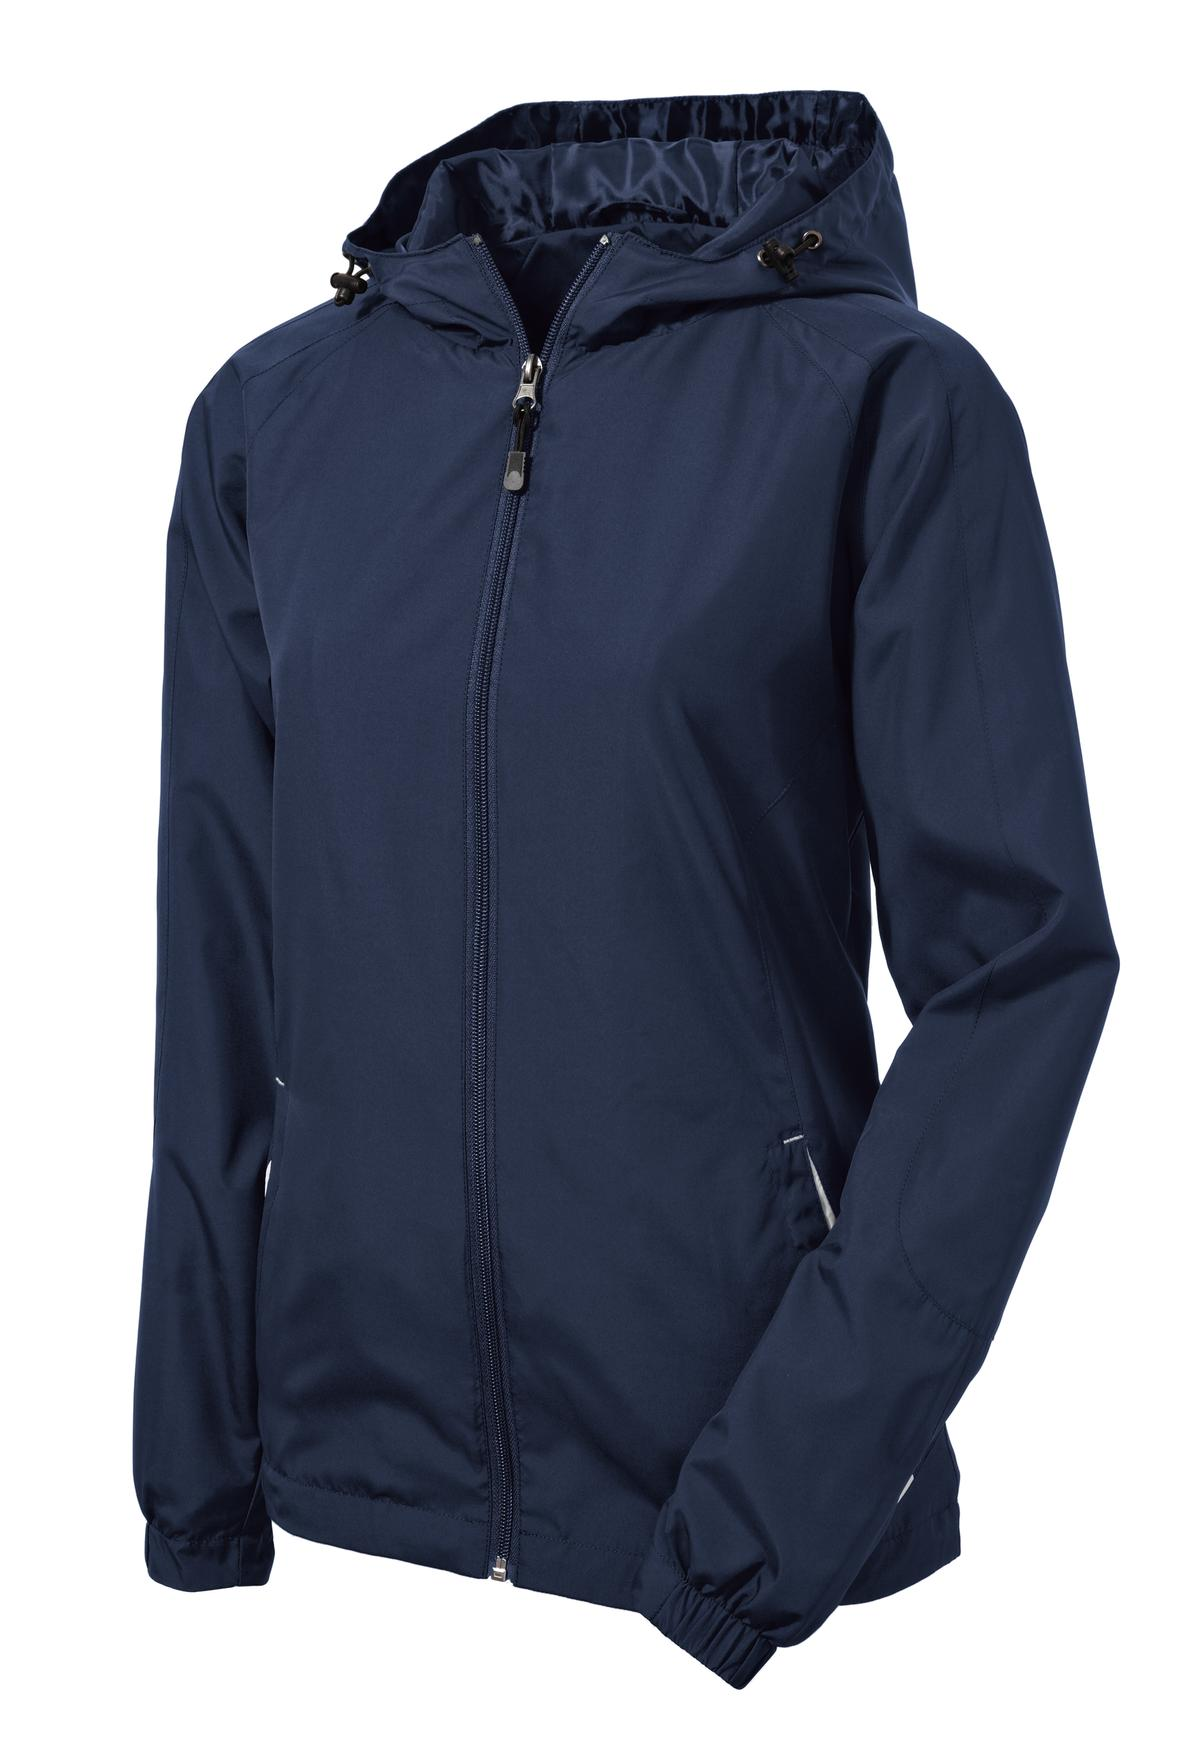 Mafoose Women's Colorblock Hooded Raglan Jacket True Navy/White-Front